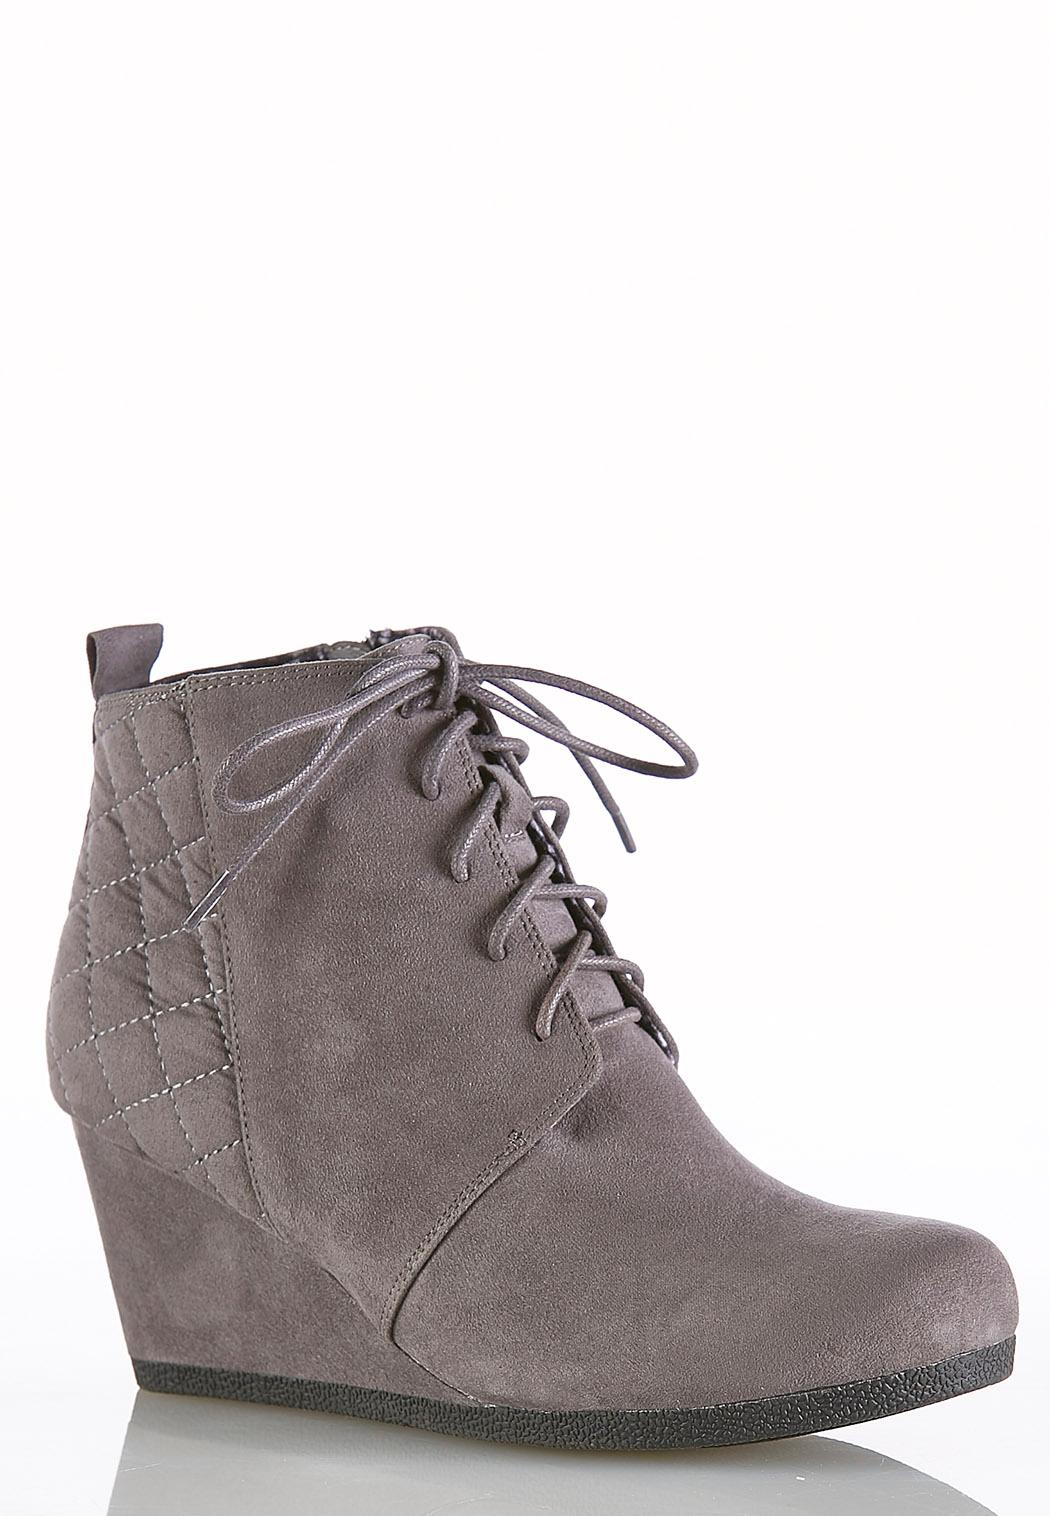 b4d5839c7f8 Lace Up Faux Suede Wedge Booties Ankle   Shooties Cato Fashions